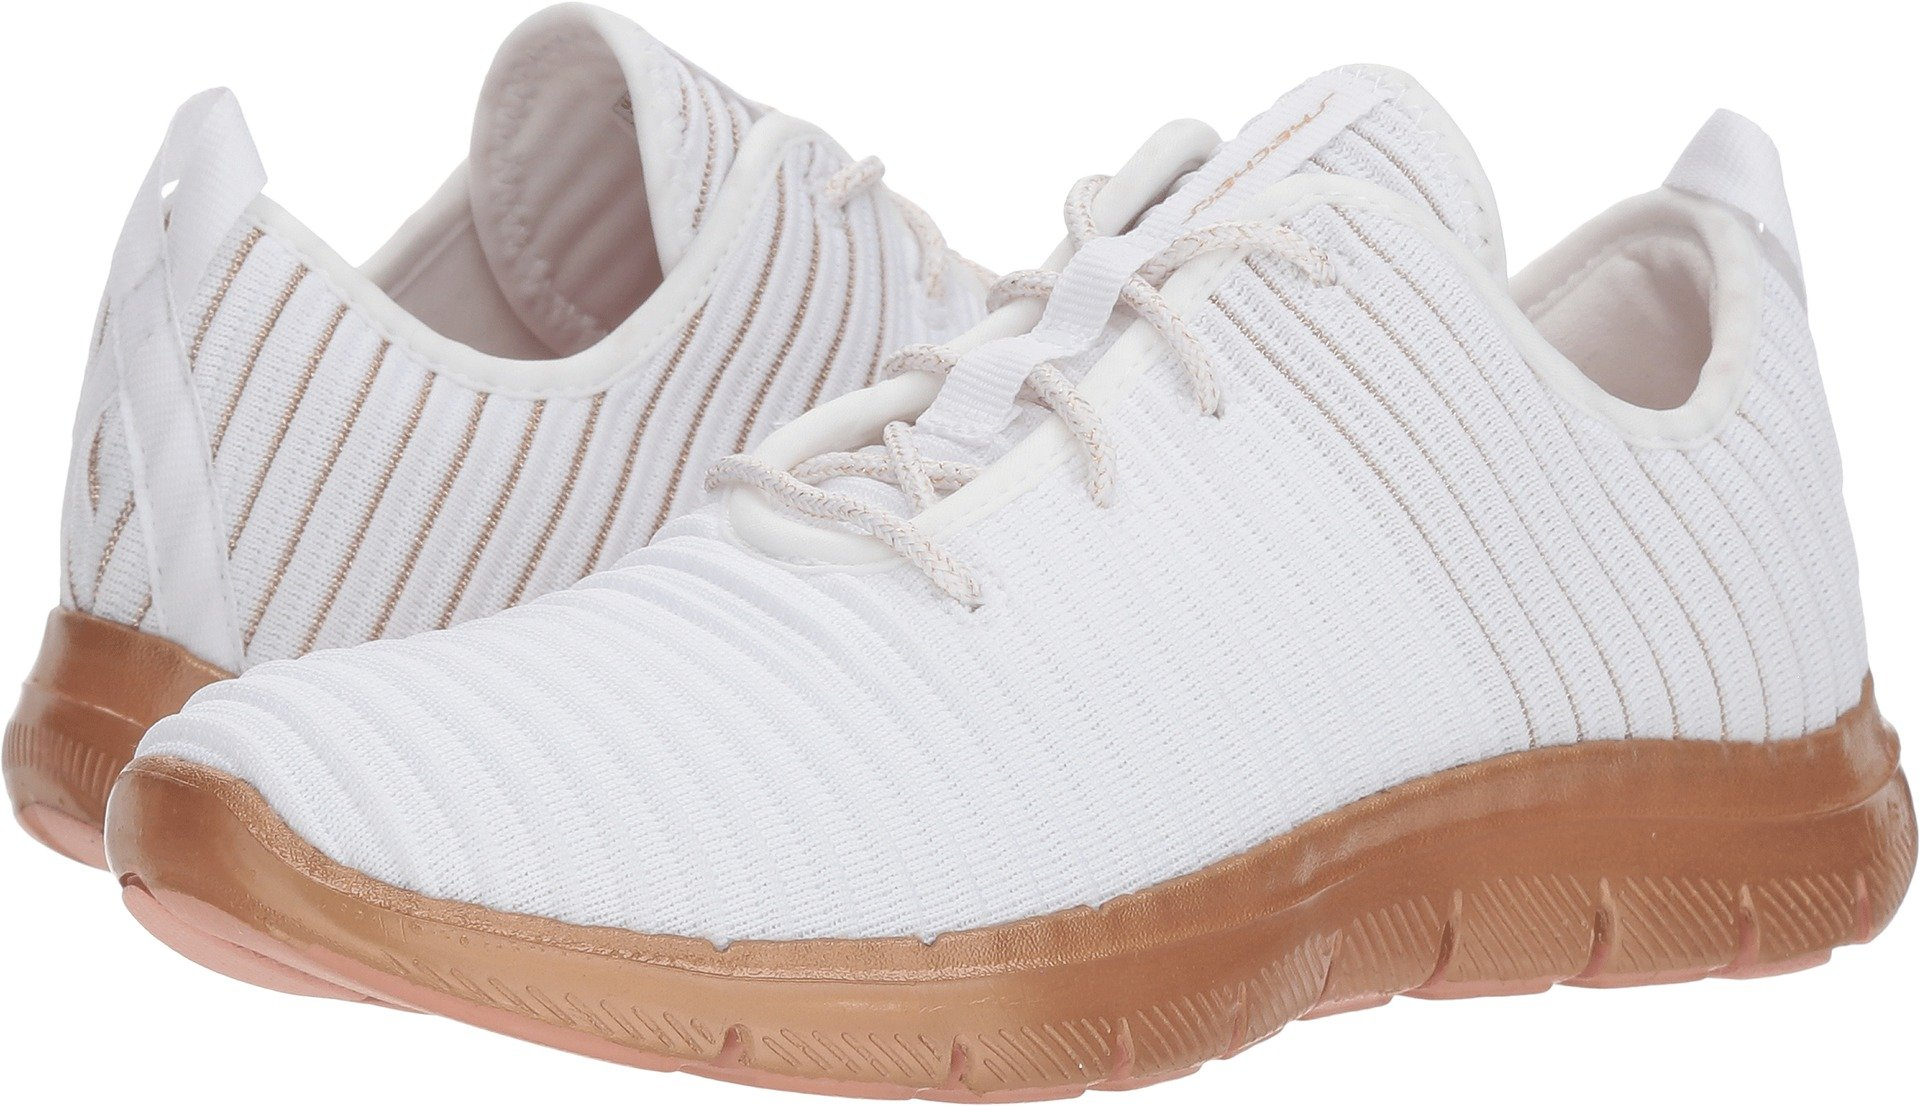 Skechers Women's Flex Appeal 2.0 - Chroma Color White/Gold 6.5 B US